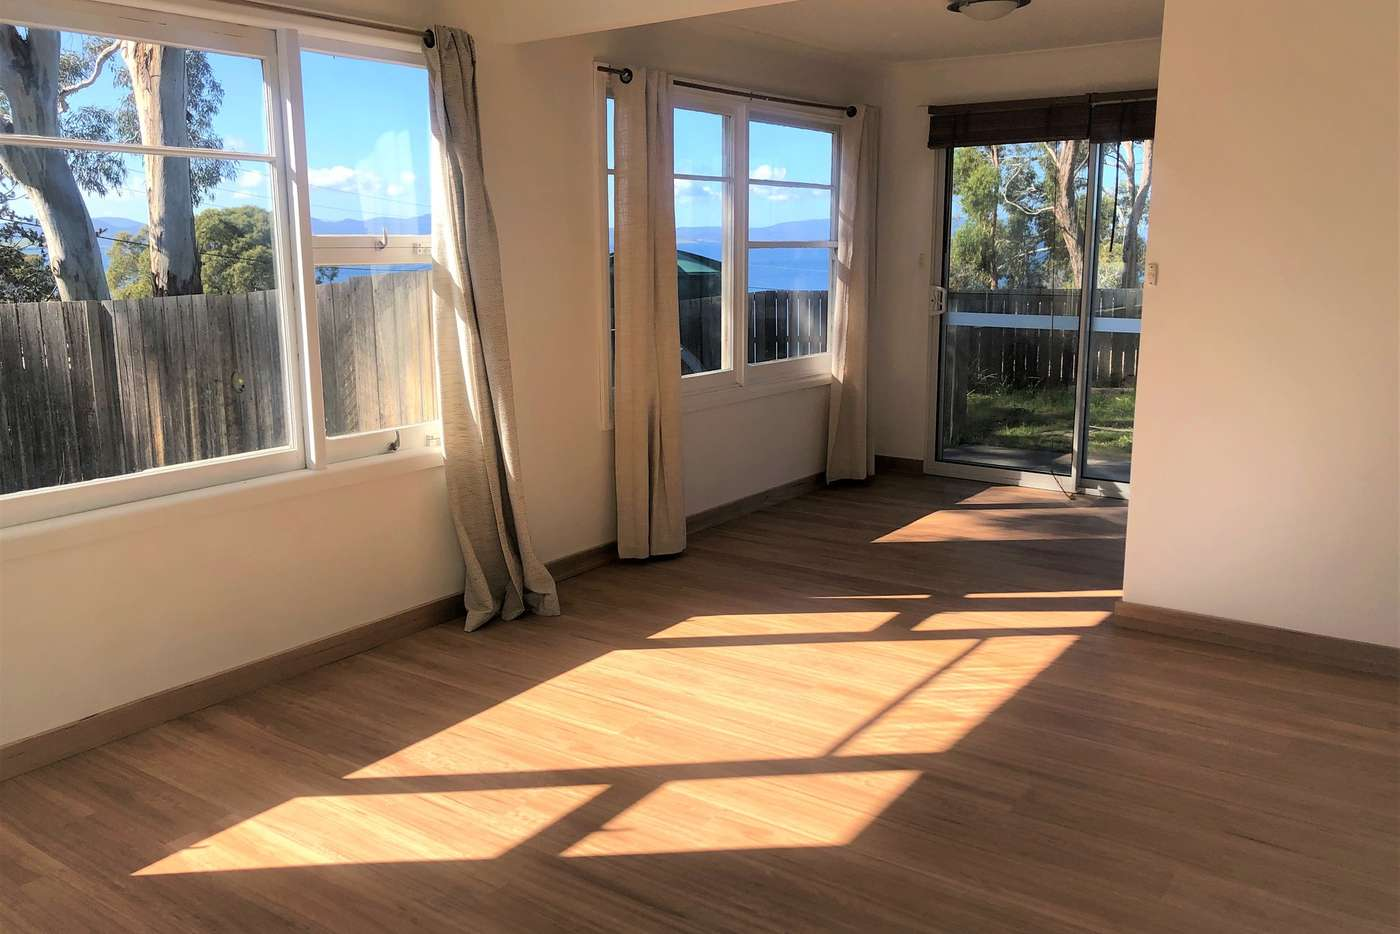 Sixth view of Homely house listing, 1 Susans Bay Road, Primrose Sands TAS 7173